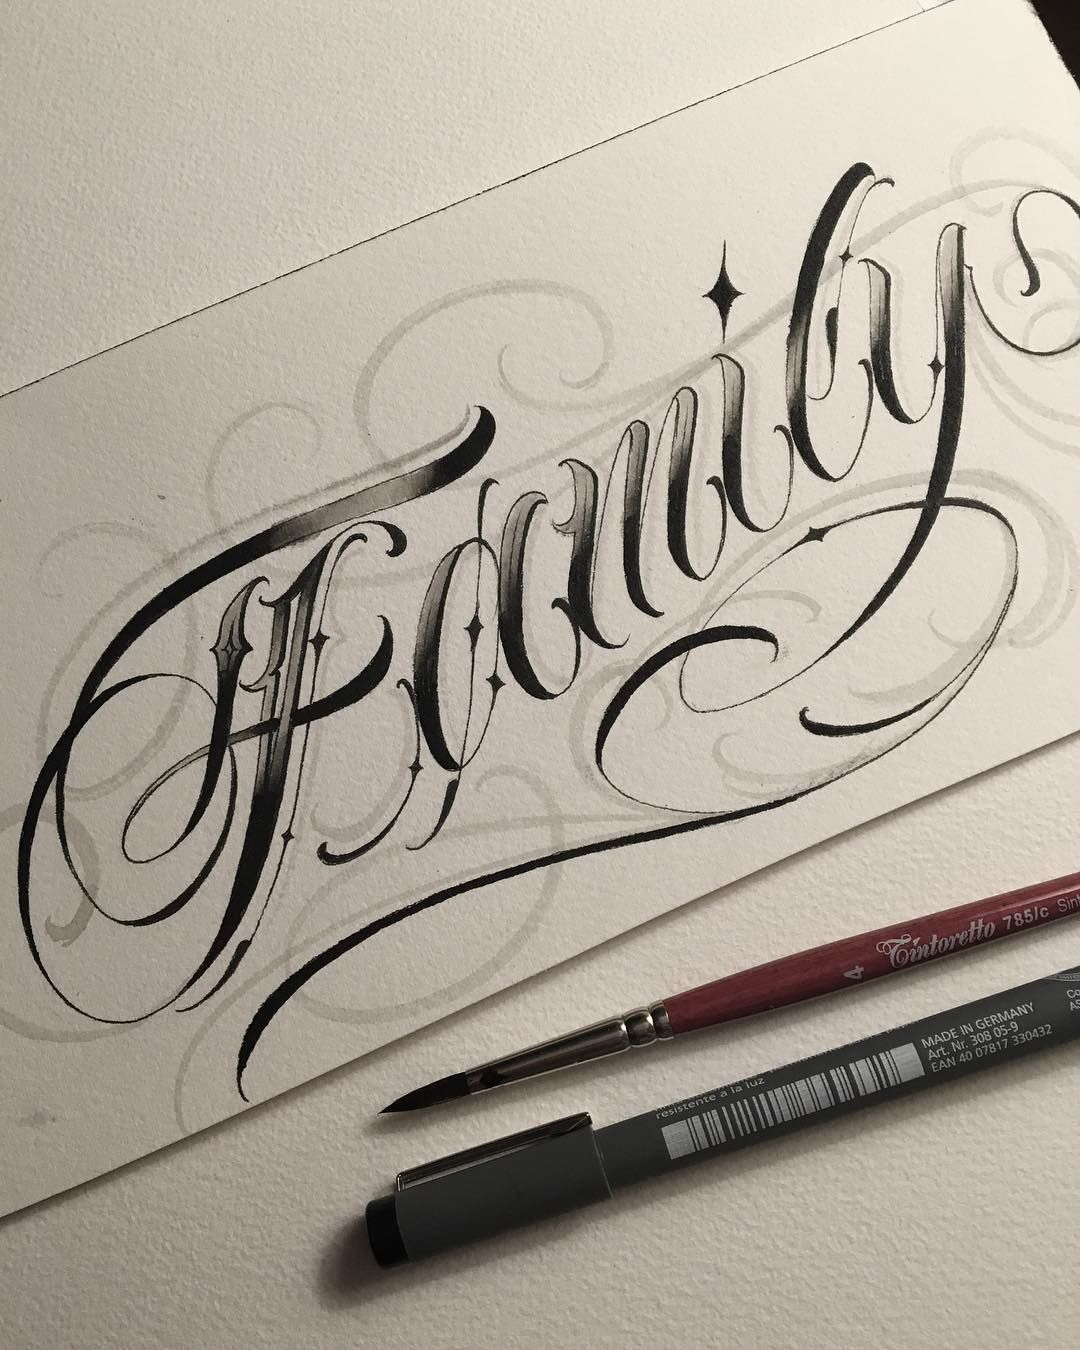 Calligraphy Tattoo Pinterest Pin By Marco Jg On Tattoo Pinterest Tattoos Family Tattoos